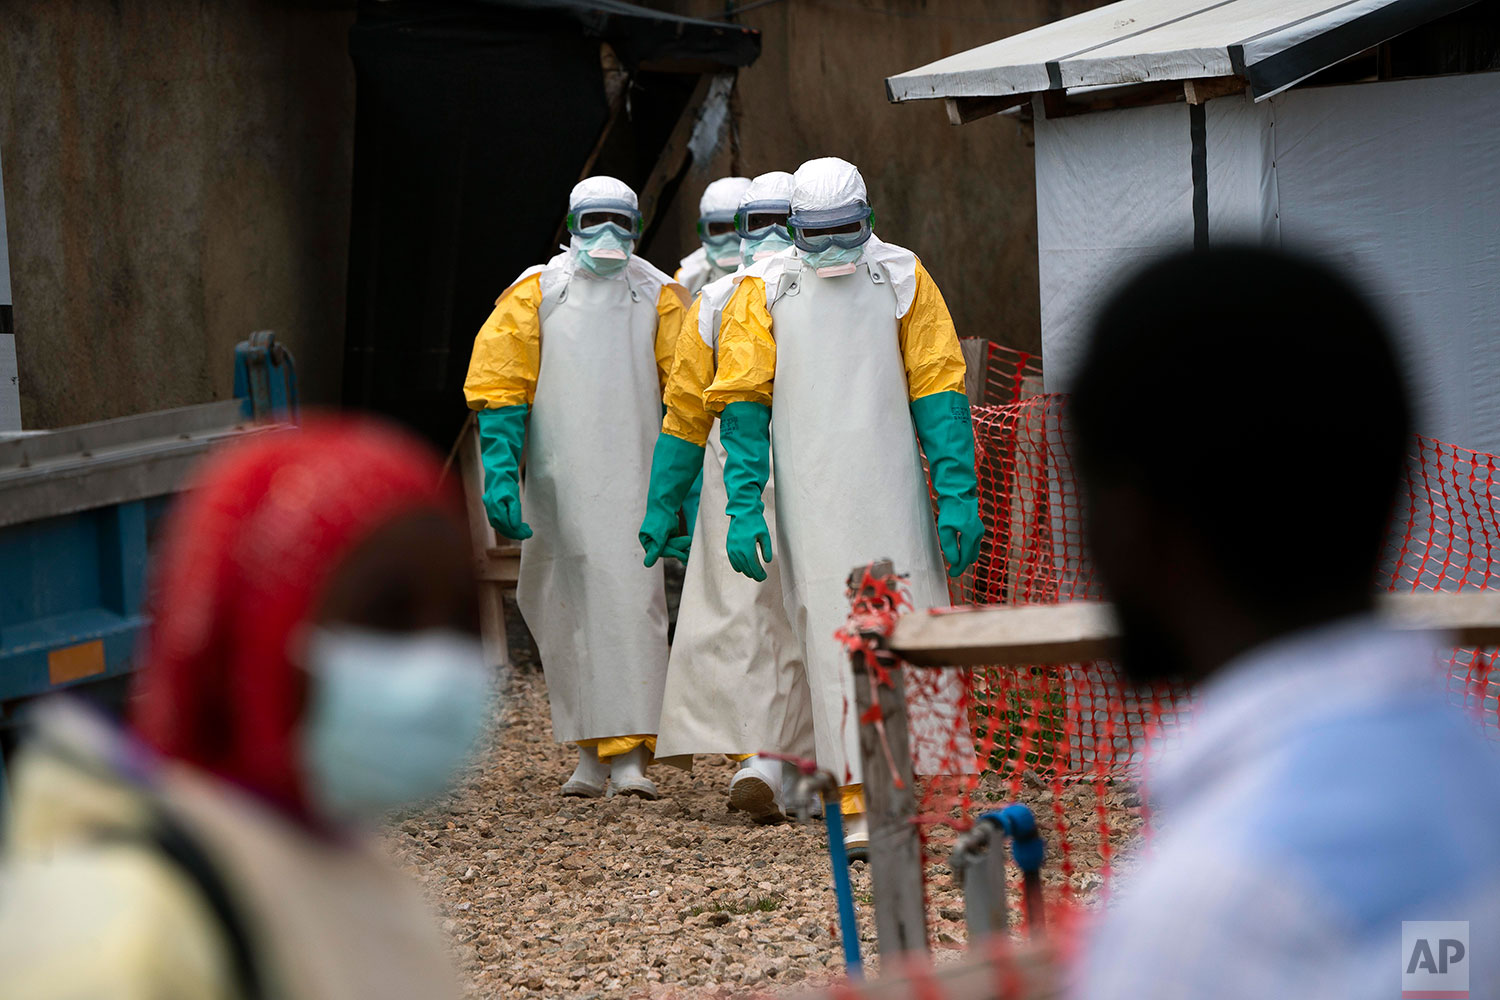 In this July 16, 2019 photo, health workers dressed in protective gear begin their shift at an Ebola treatment center in Beni, Congo DRC.  (AP Photo/Jerome Delay)